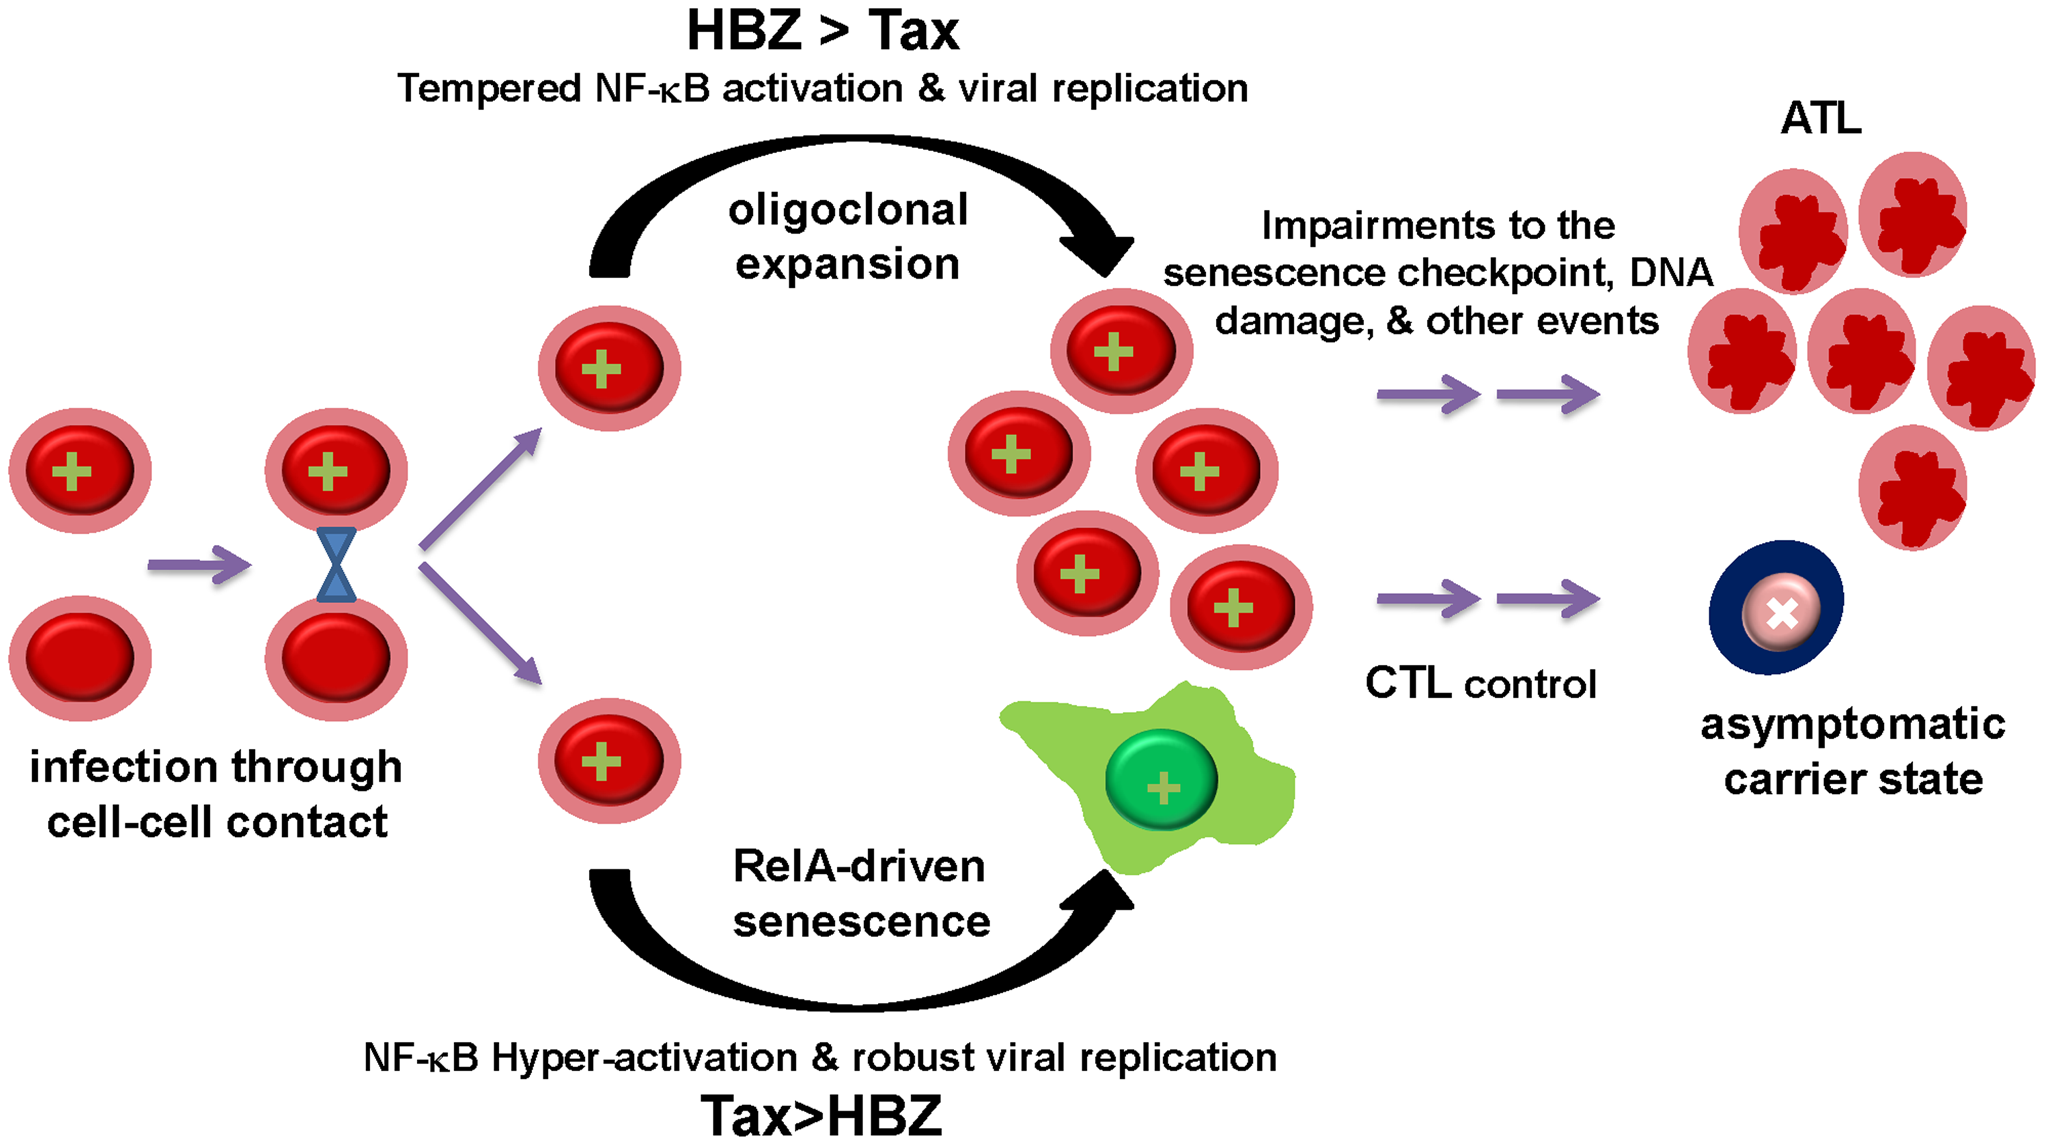 The balance between Tax and HBZ expression regulates the outcome of HTLV-1 infection.